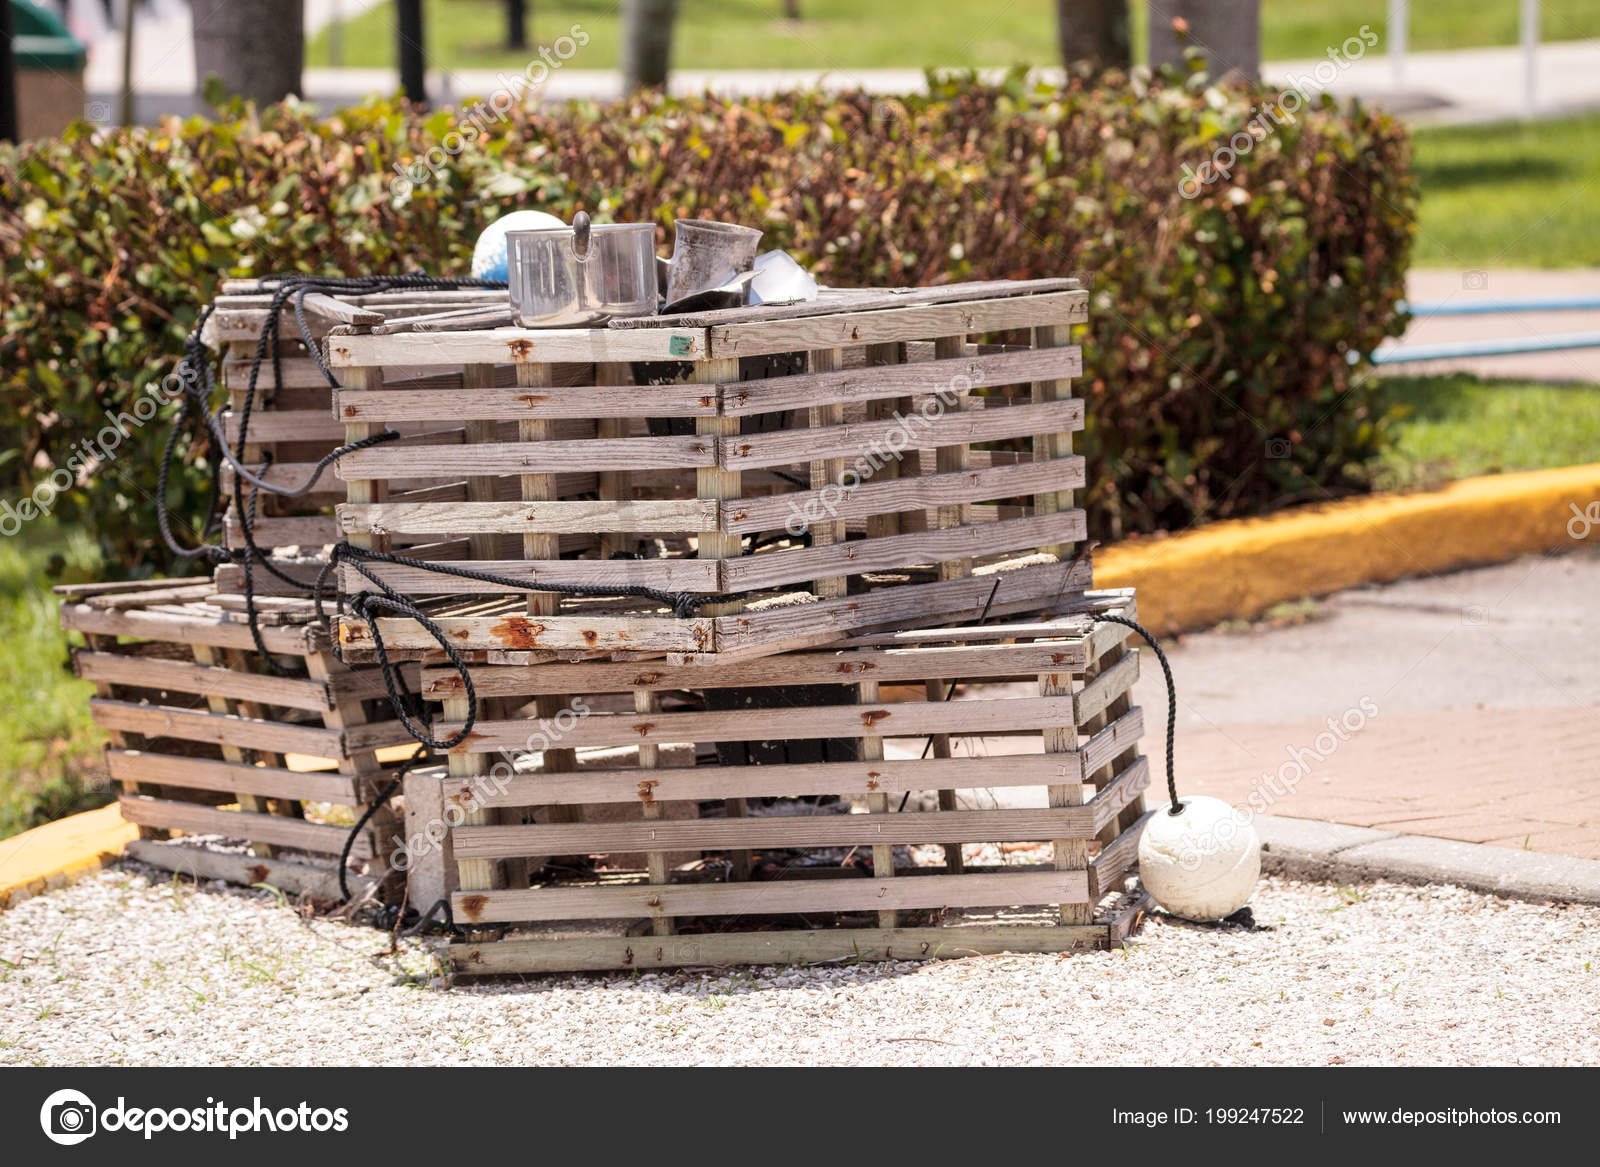 Wooden Lobster Traps For Sale In Florida Crab Lobster Traps Sit